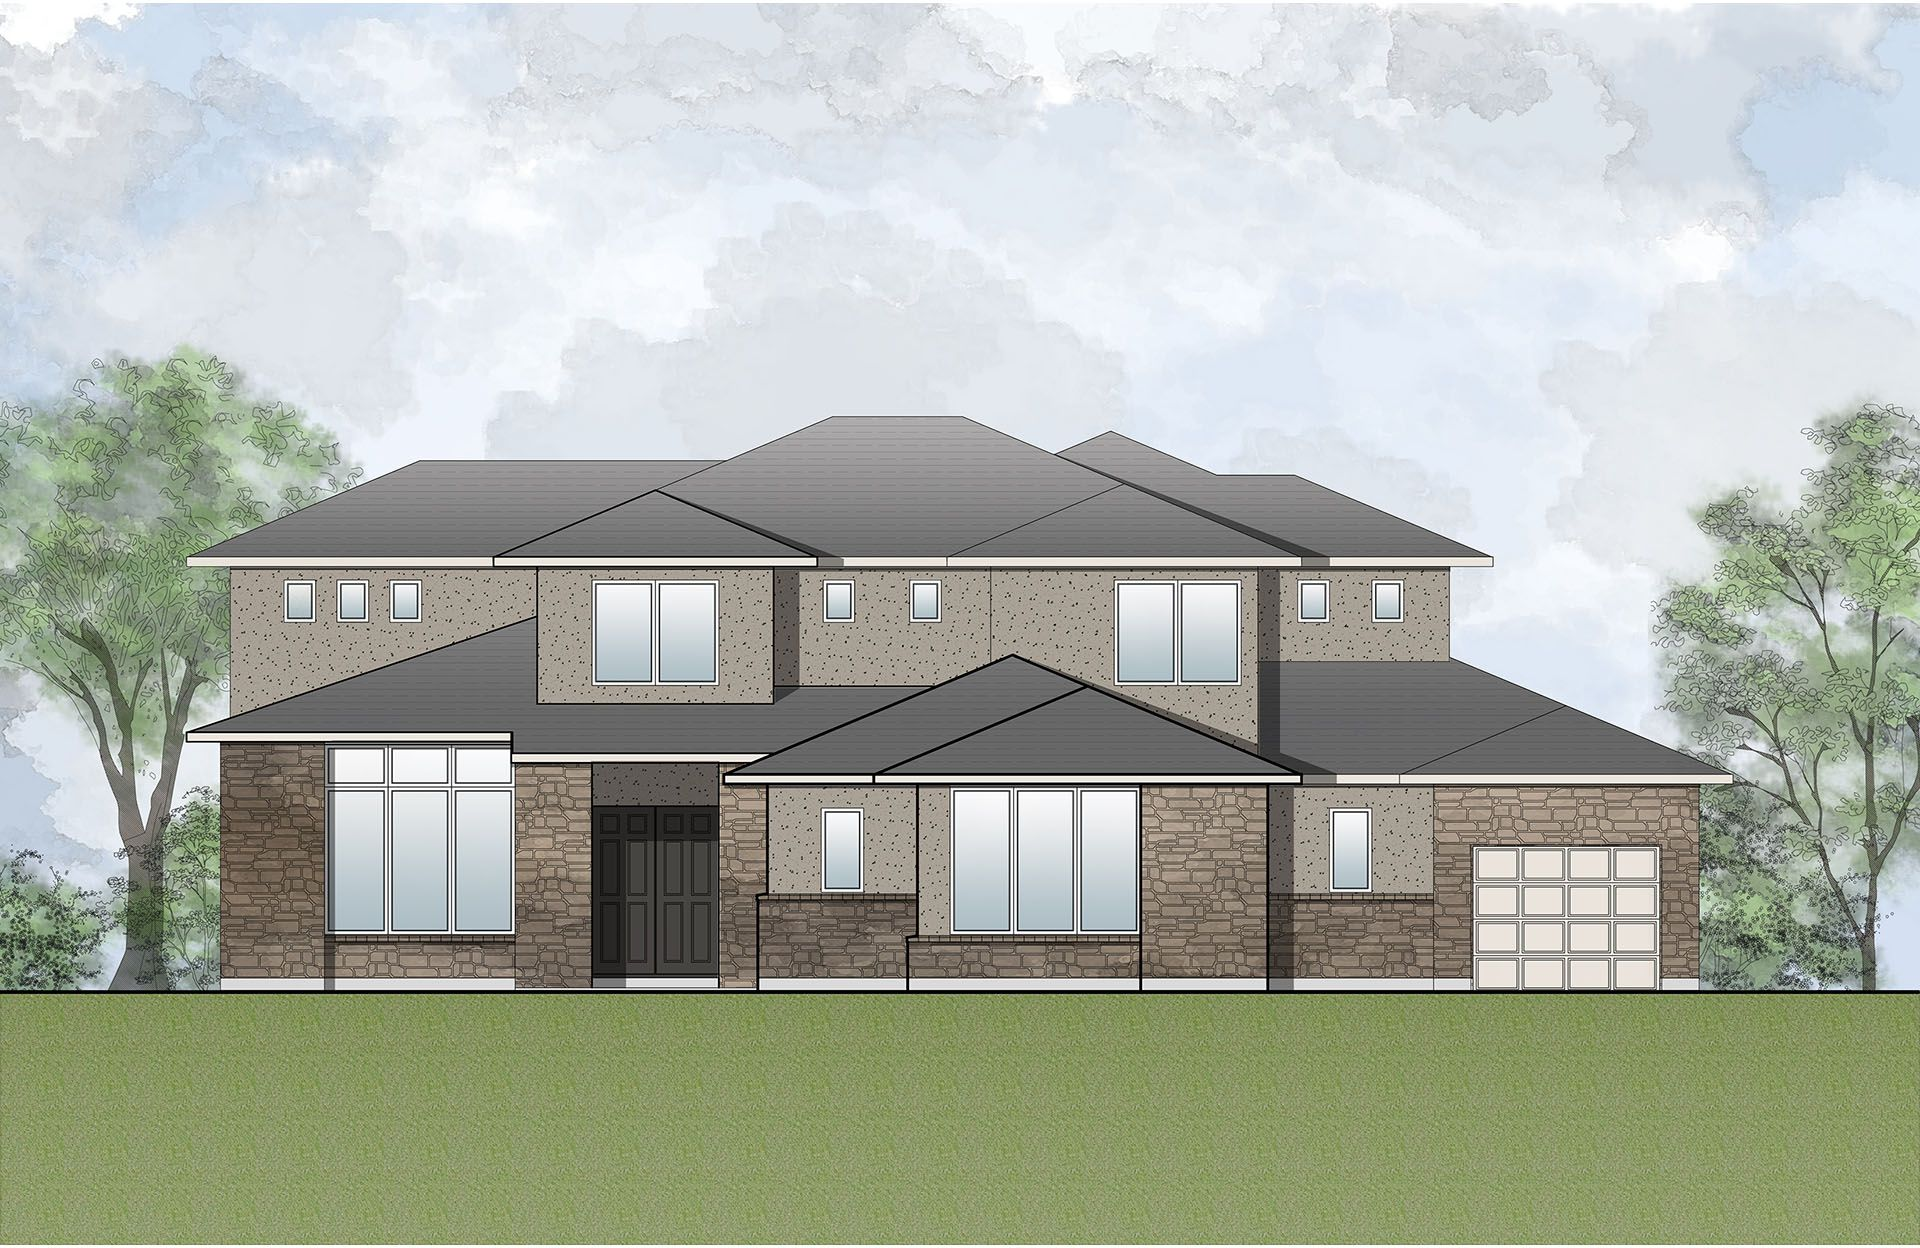 Single Family for Active at Harper's Preserve - Lynmar Ii Model Home Coming Soon! Conroe, Texas 77385 United States